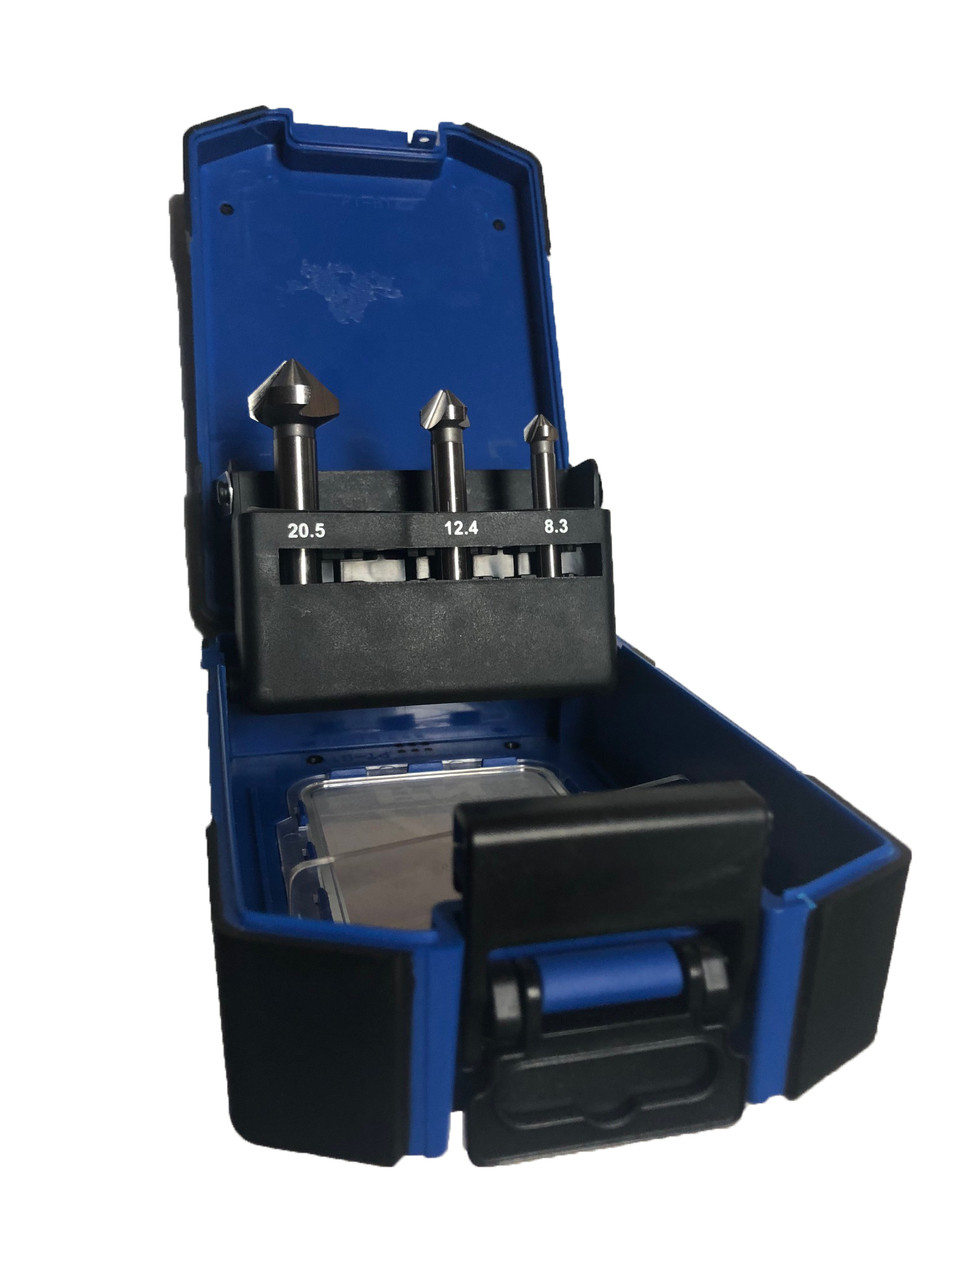 P&N 3pc HSS Countersink set by Sutton tools